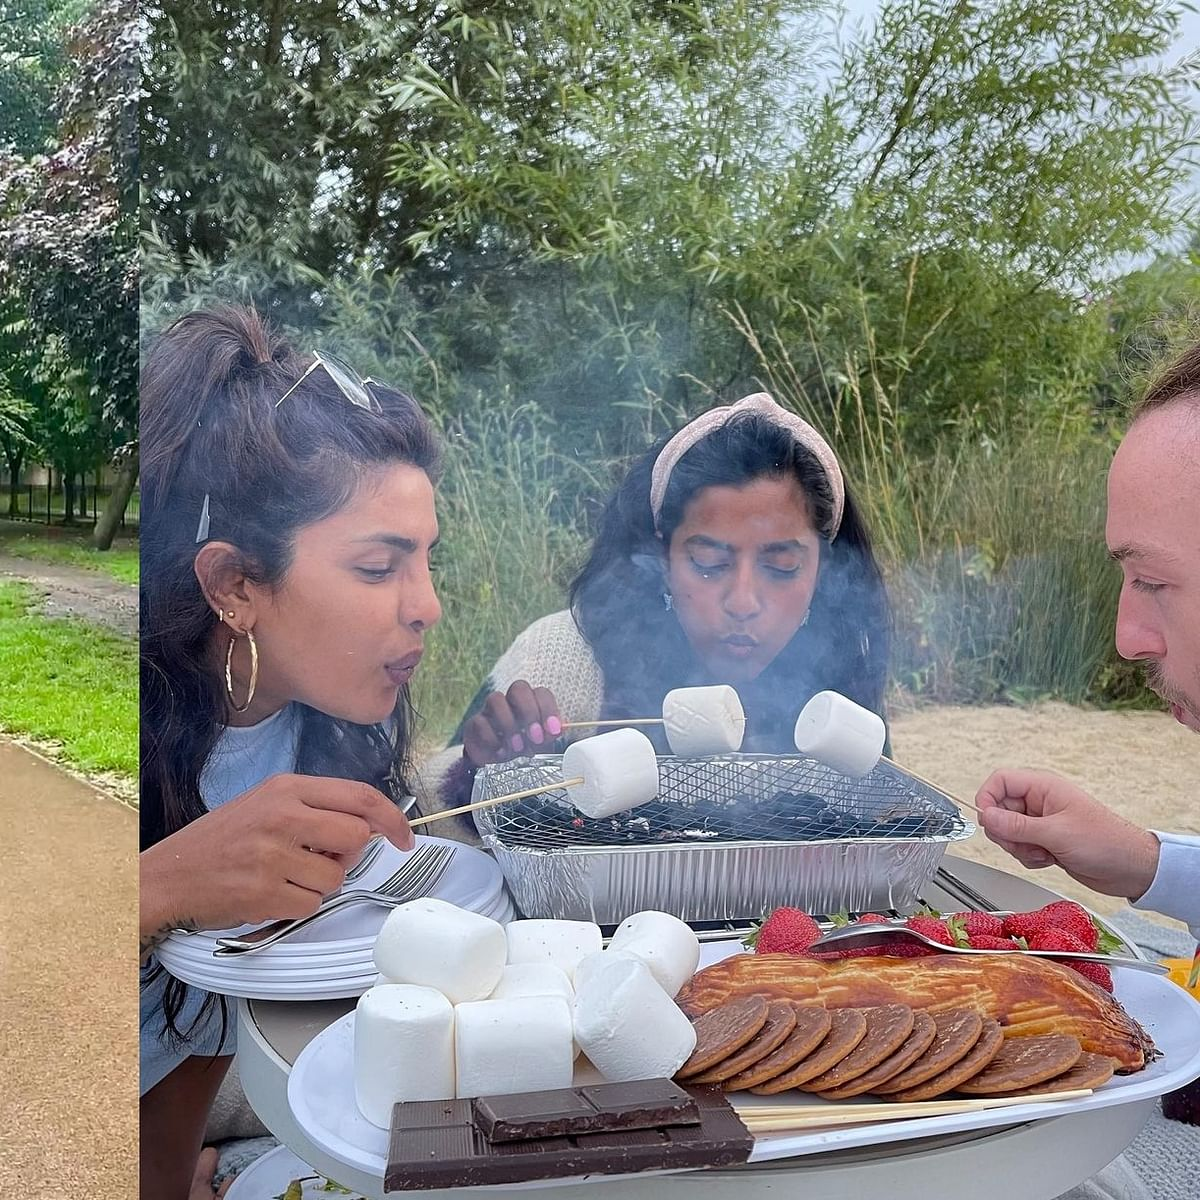 Monsoon and Marshmallows: Priyanka Chopra gives a glimpse of how she spent her days in London - see pics